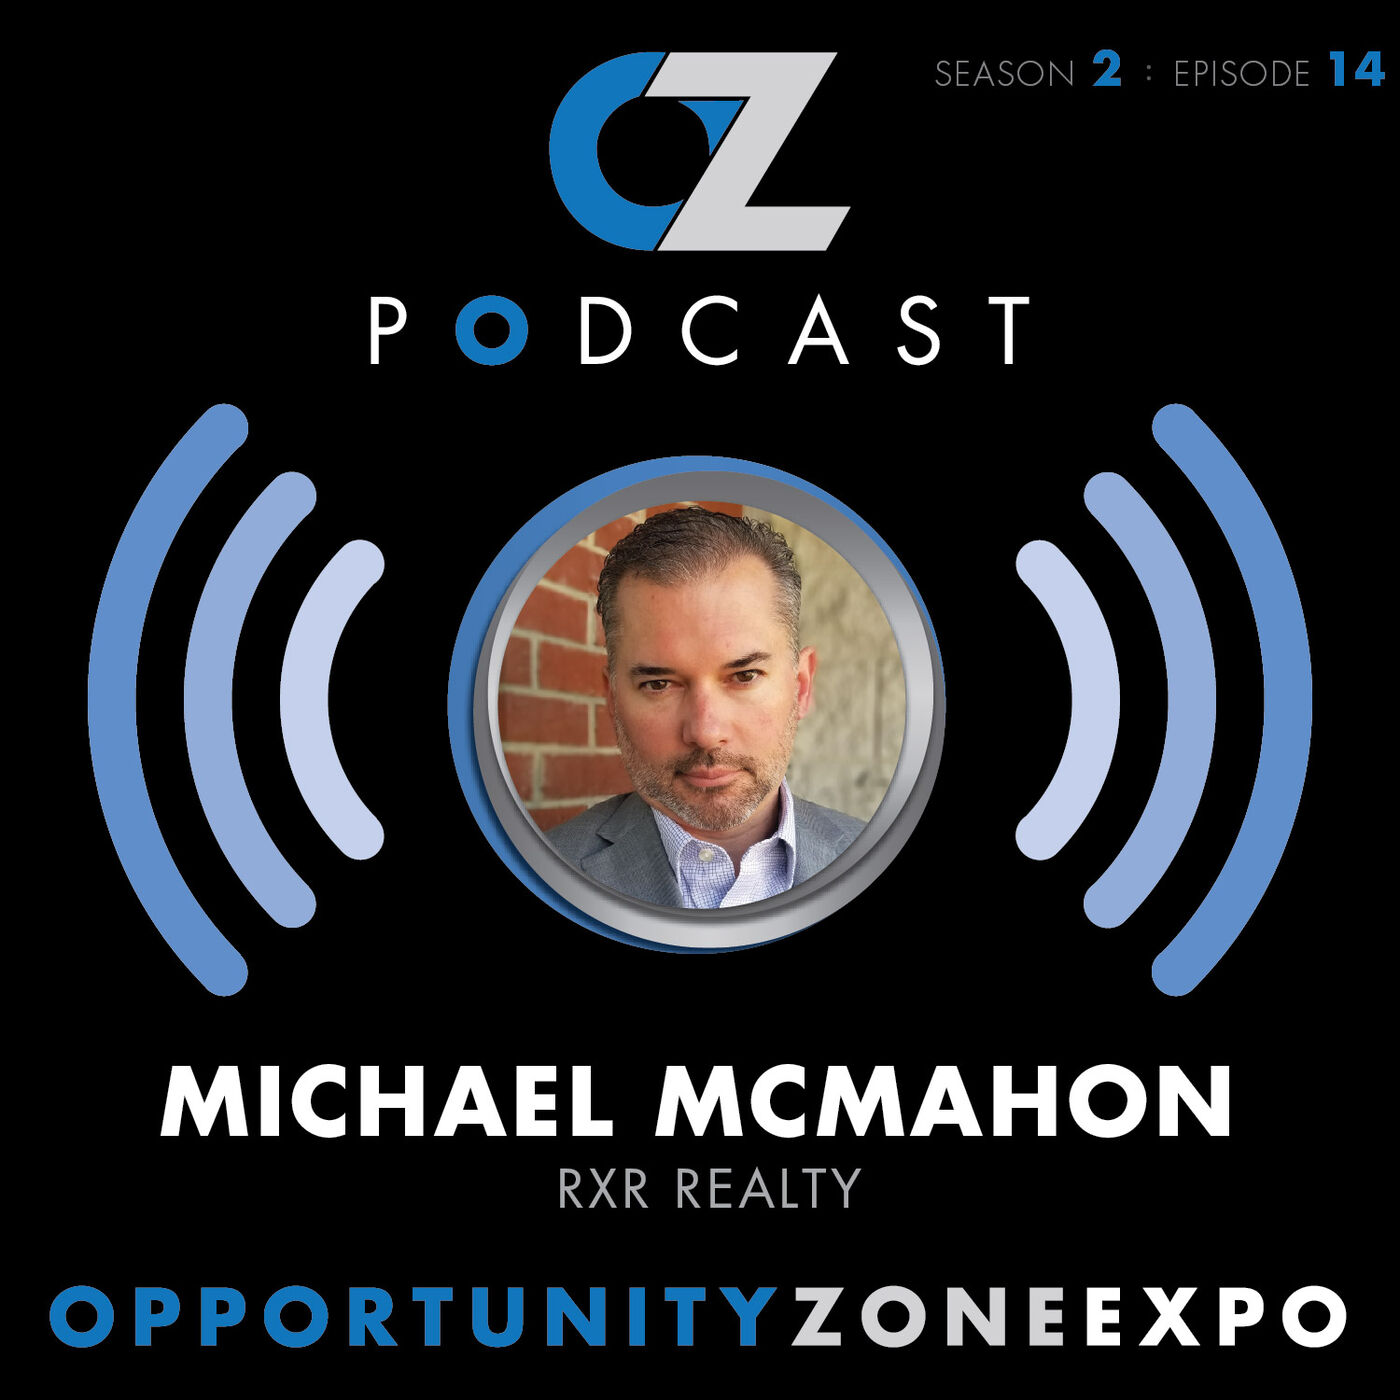 Mike McMahon - Tax Wizard Talks QOF structures, and has some surprises